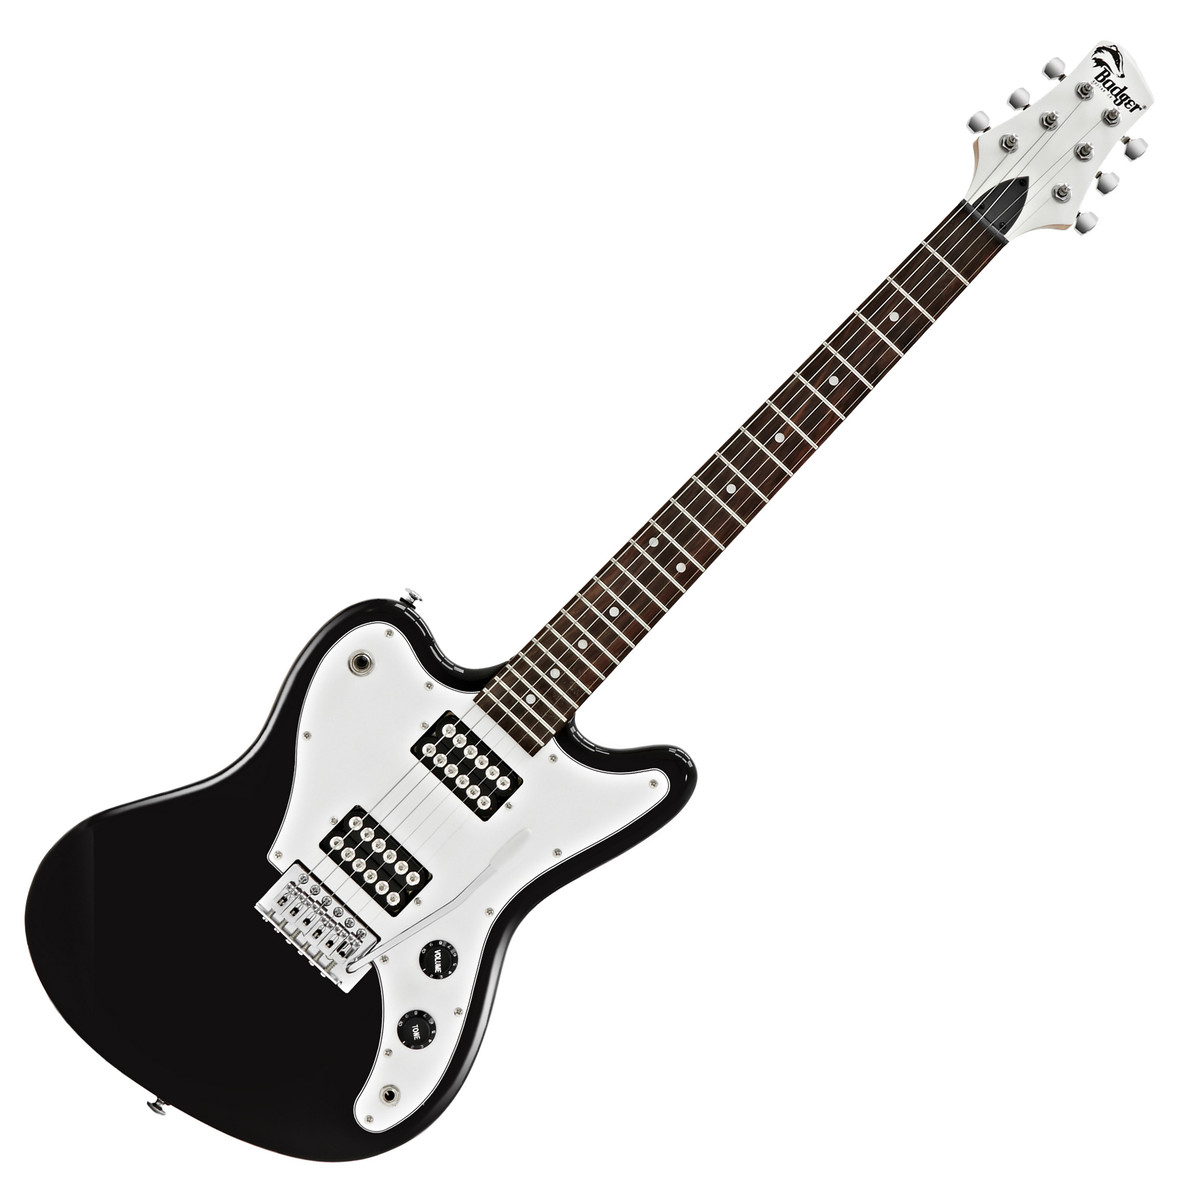 badger electric guitar black at. Black Bedroom Furniture Sets. Home Design Ideas